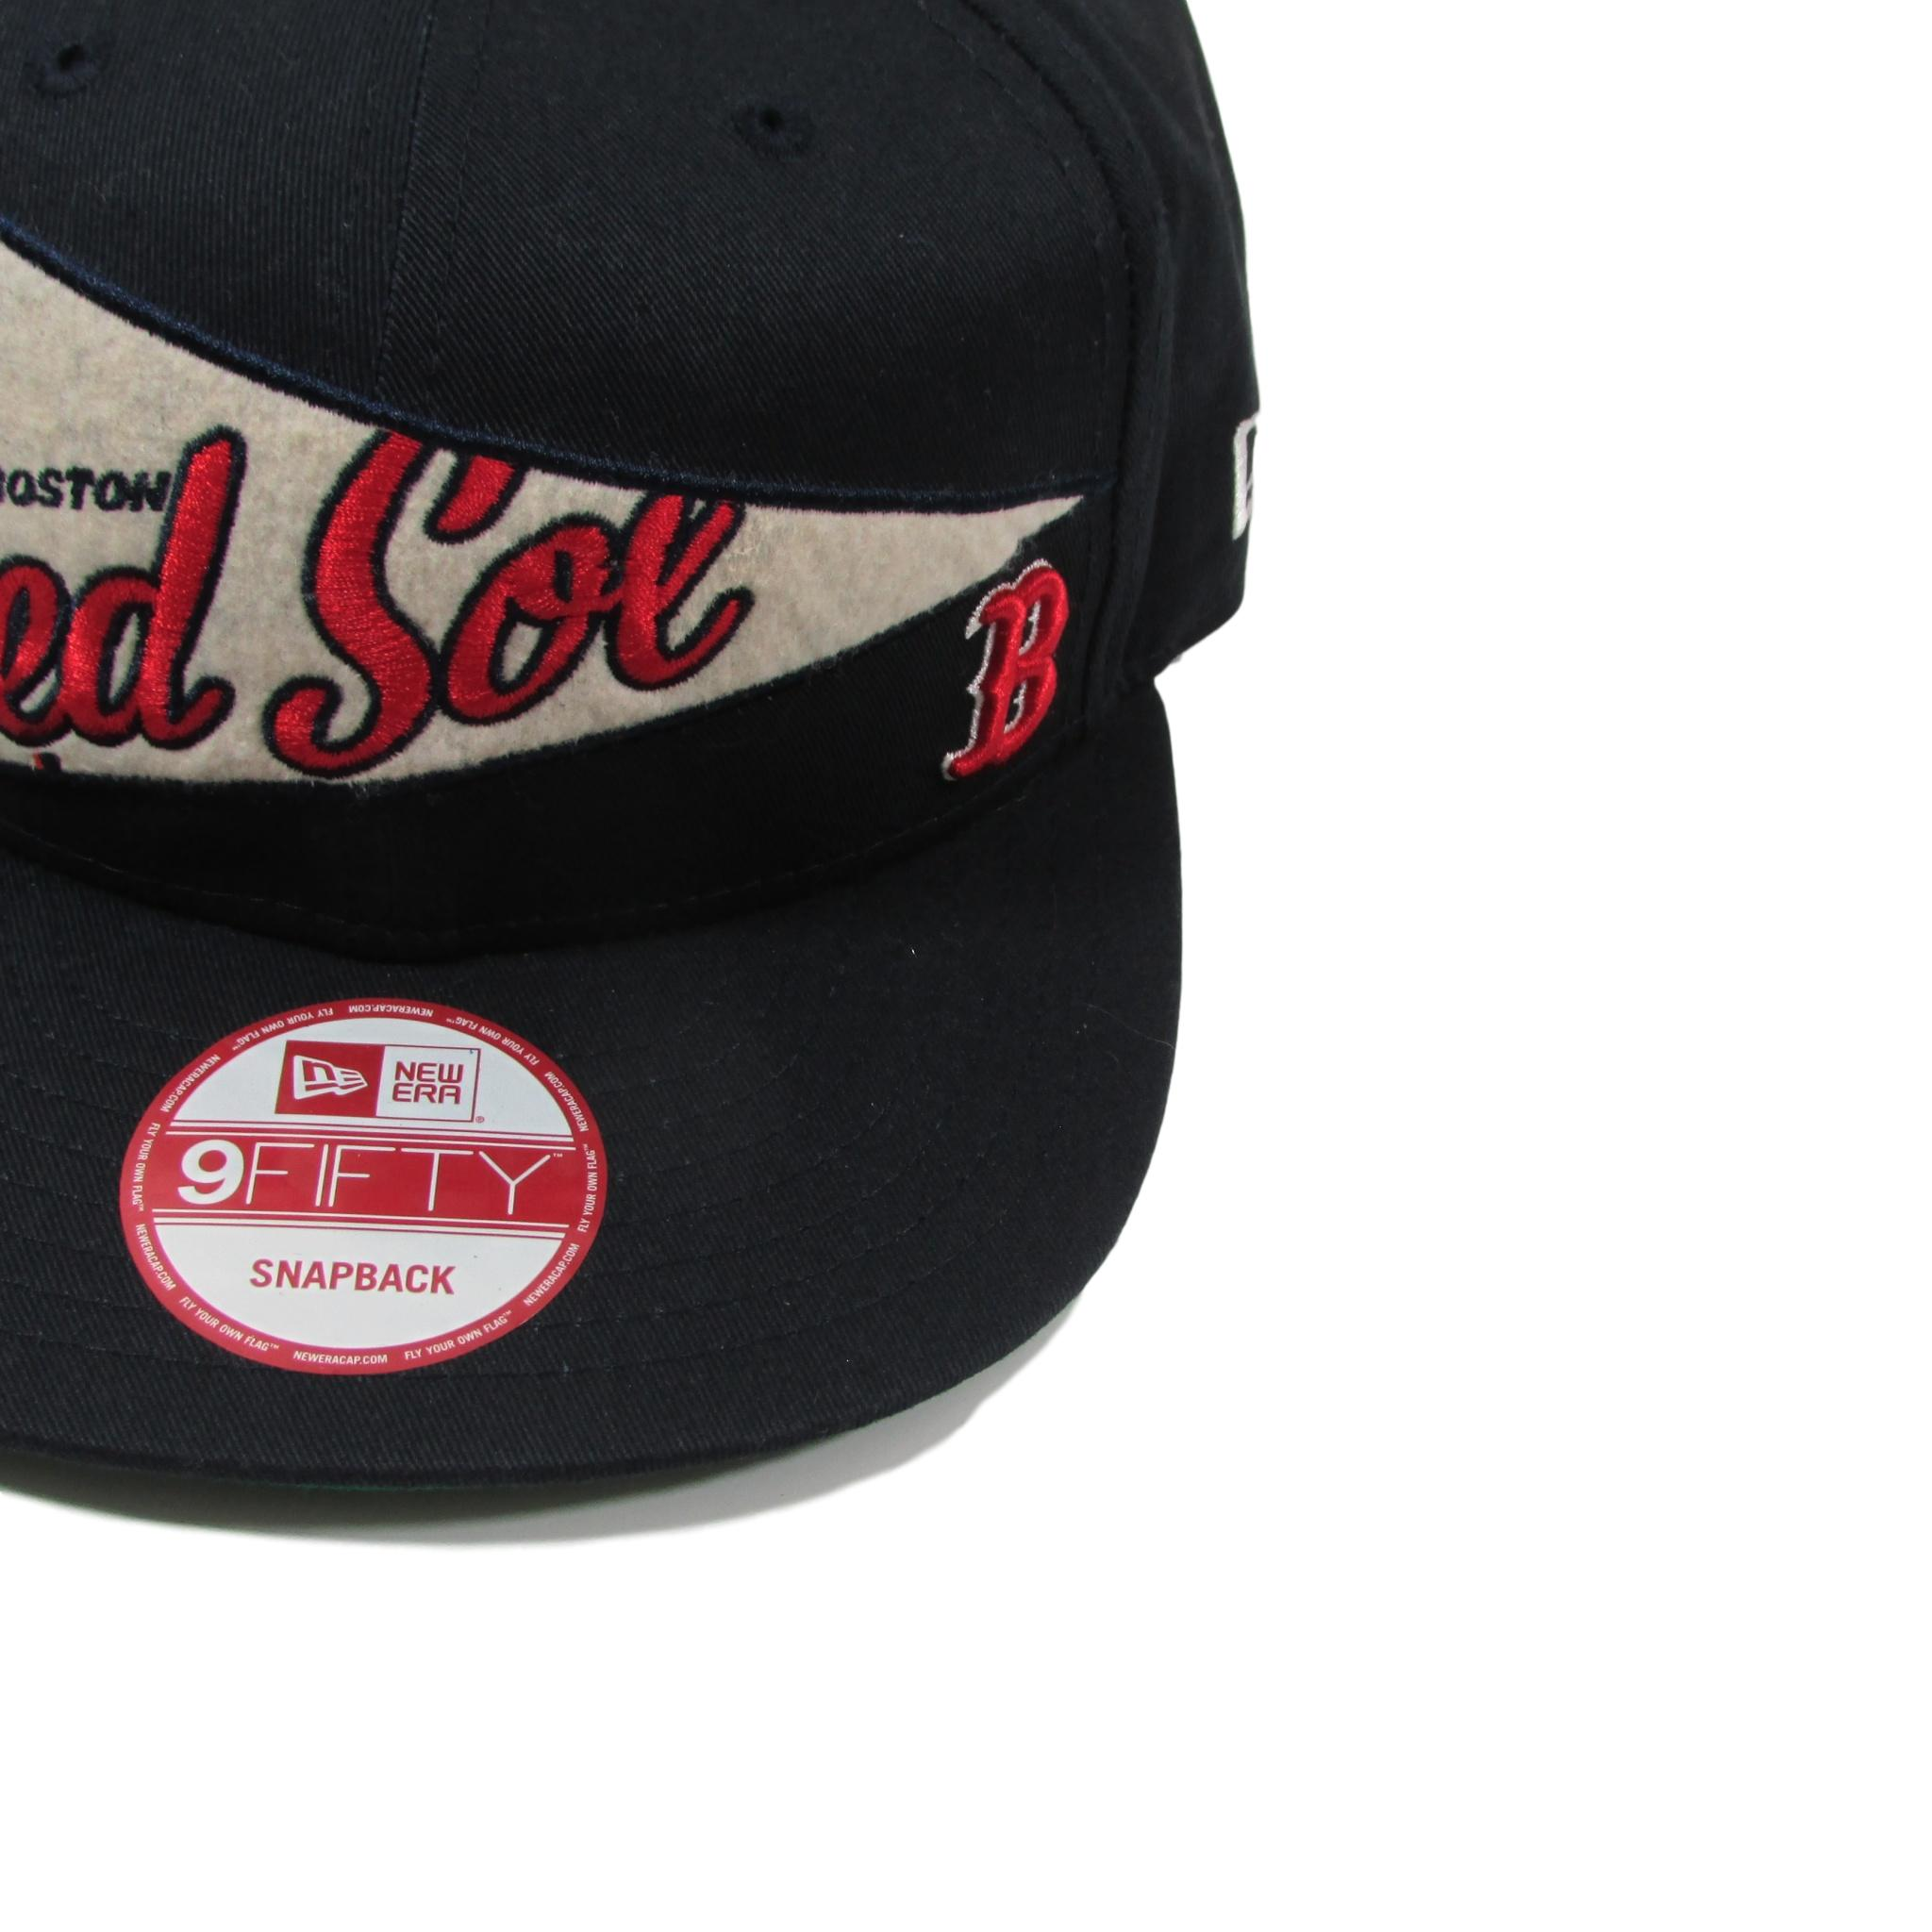 Boston Red Sox Baseball Snapback Hat Pennant Banner Style New Era